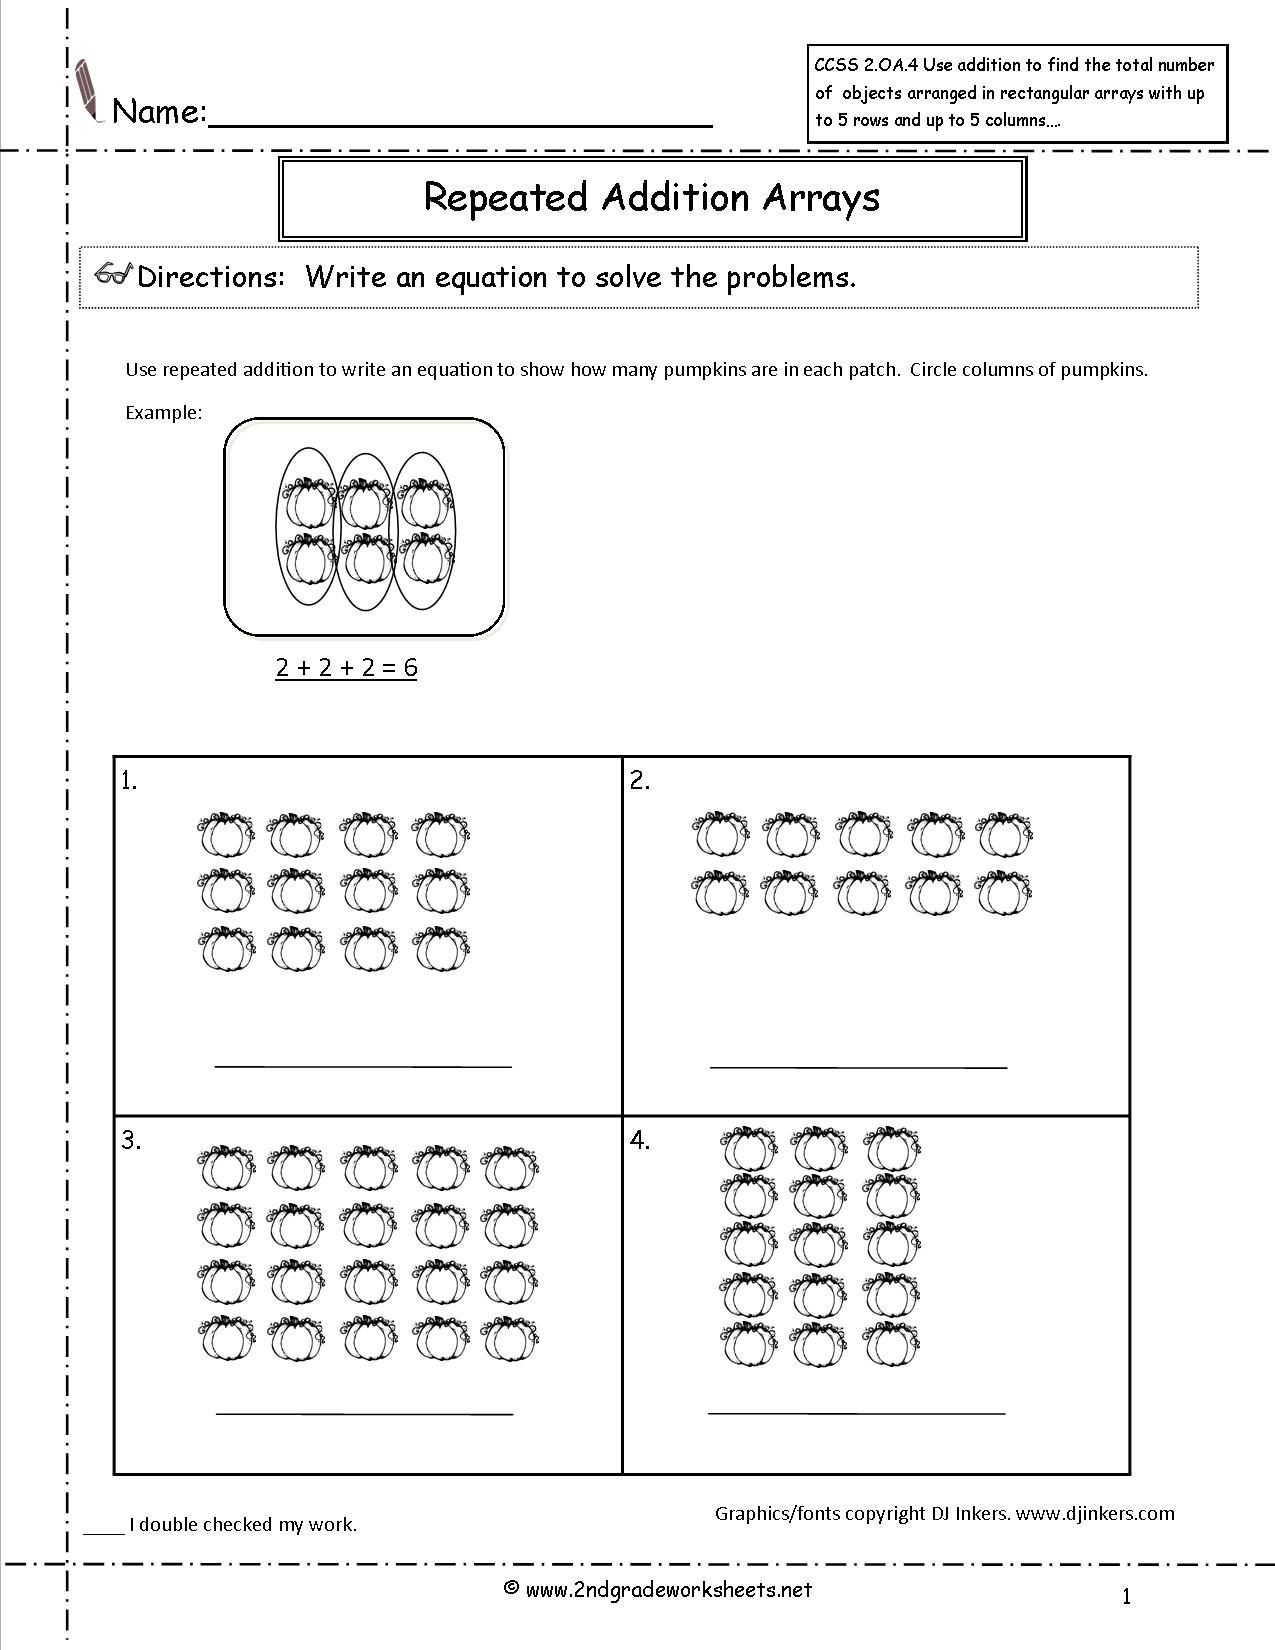 Best Images Of Pumpkin Addition Worksheet  Repeated